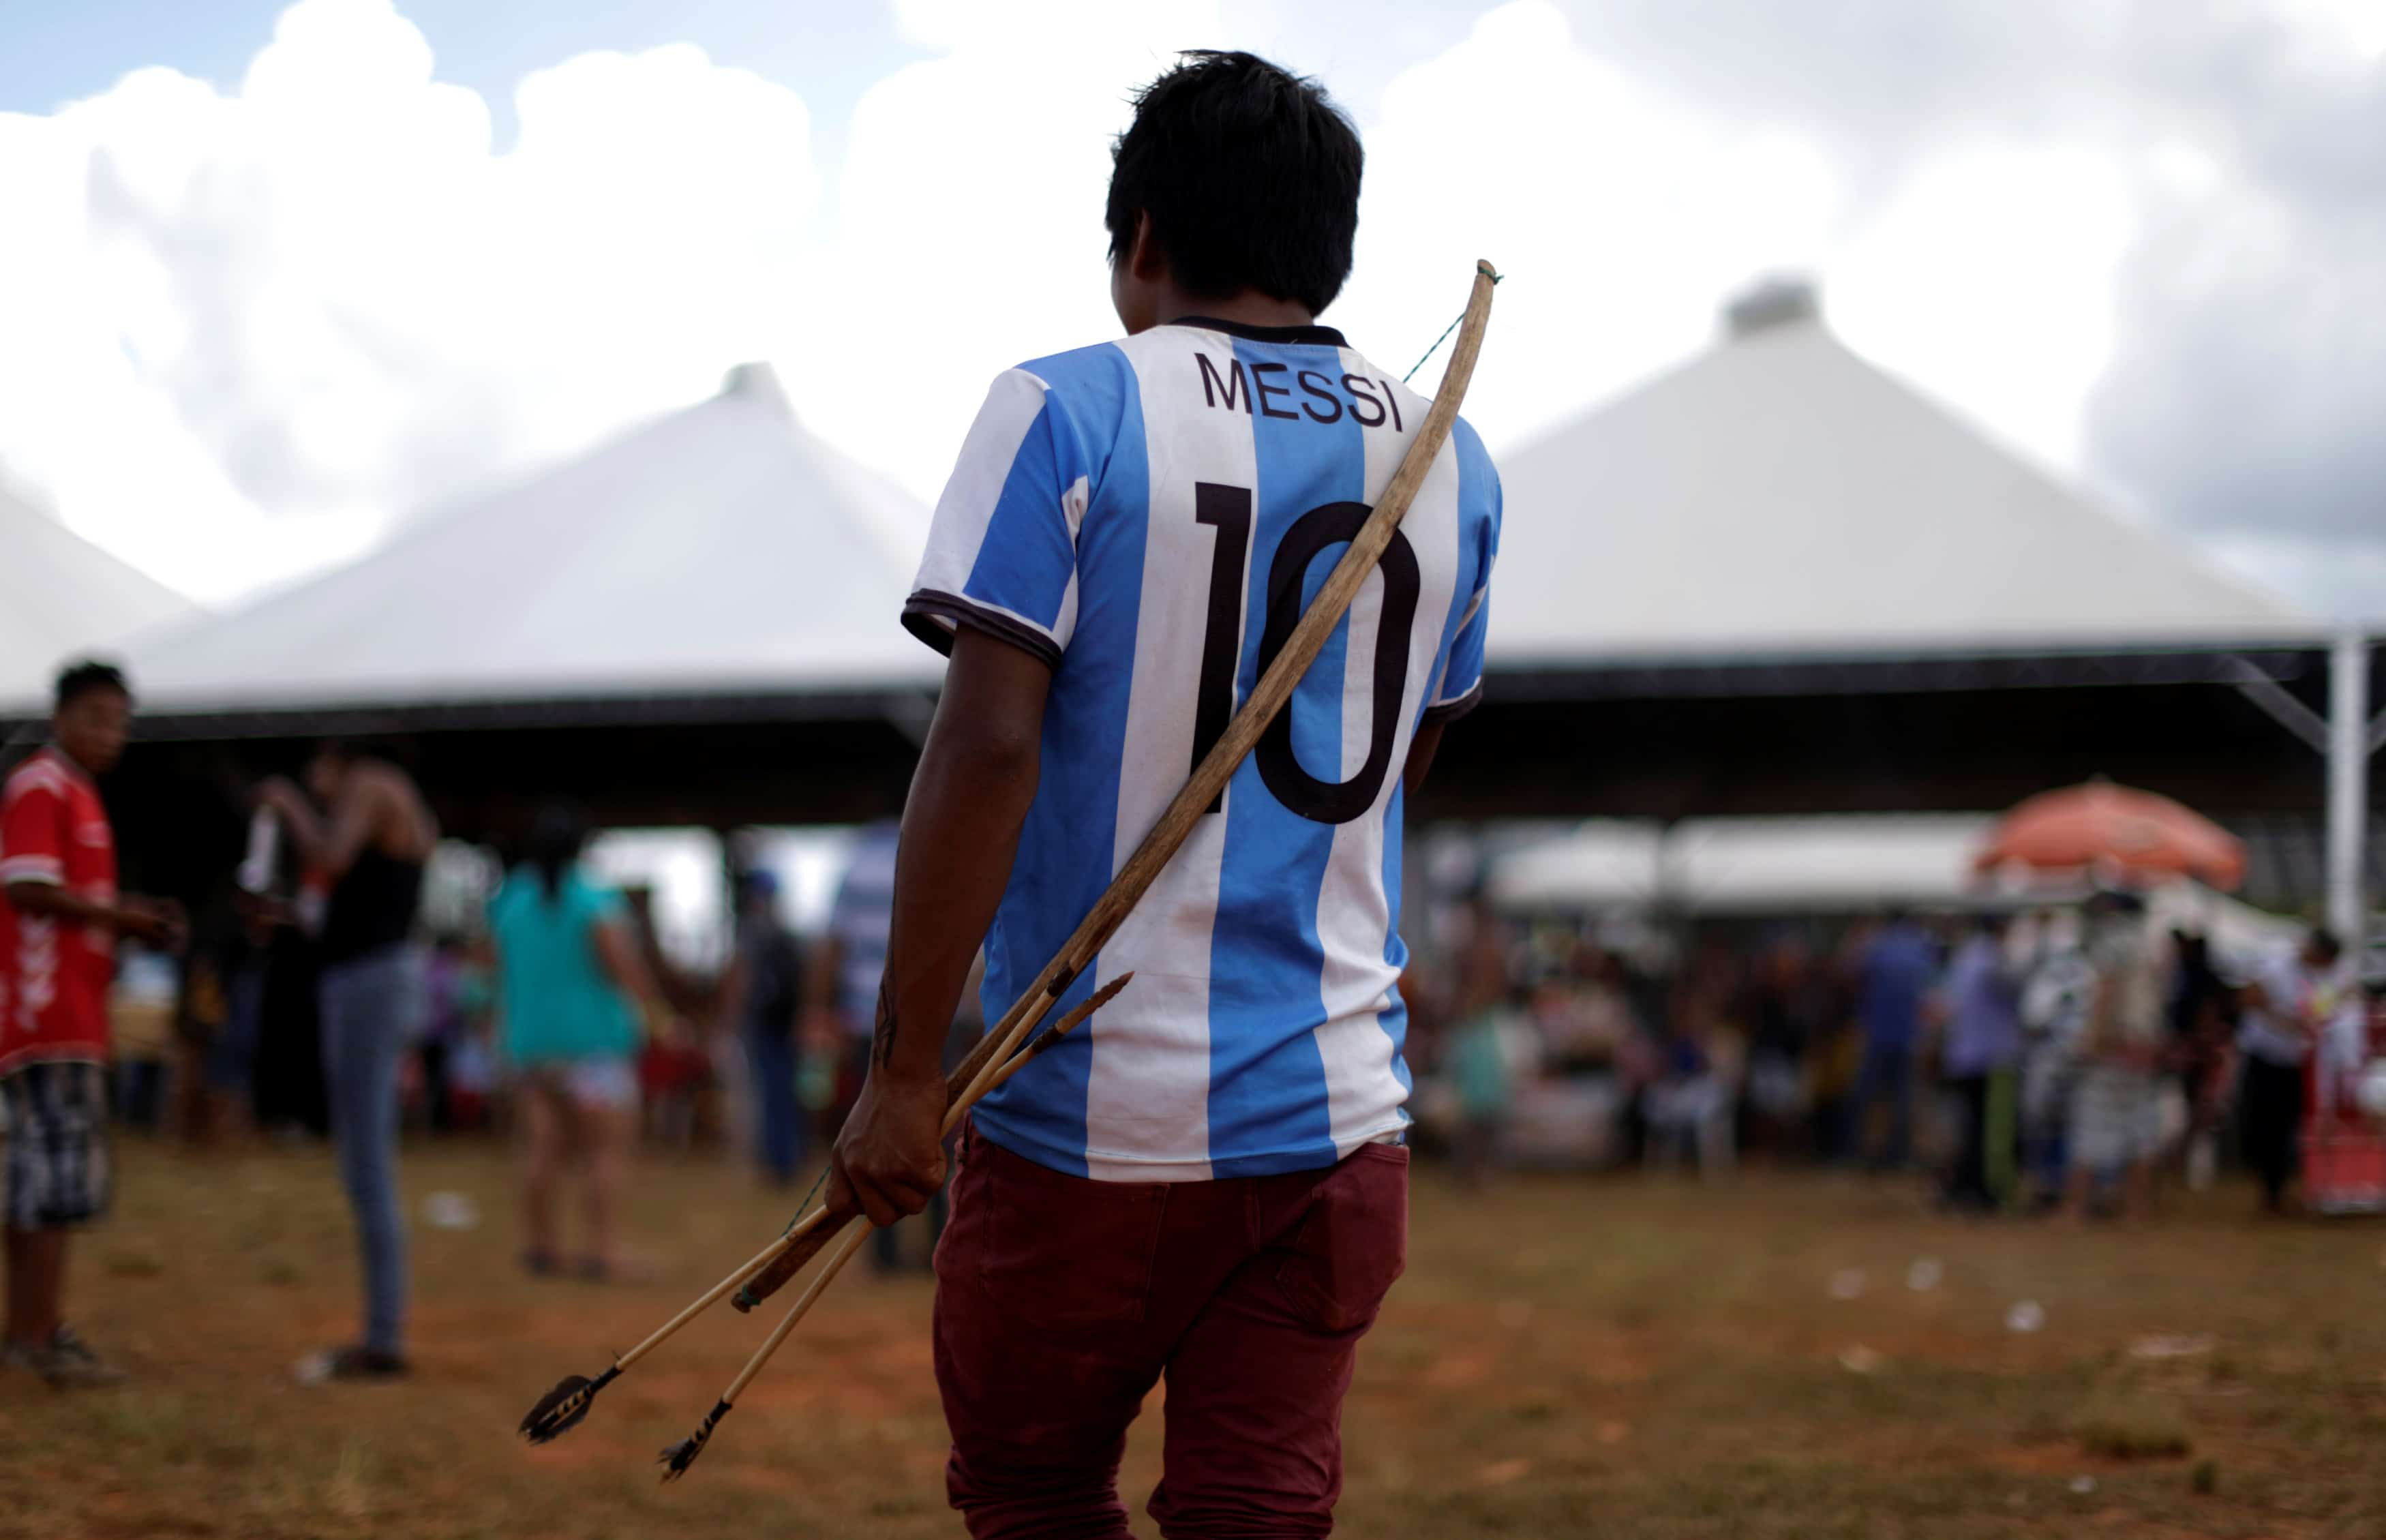 A Brazilian Indian wears a Lionel Messi jersey as he takes part in a demonstration against the violation of indigenous people's rights, in Brasilia